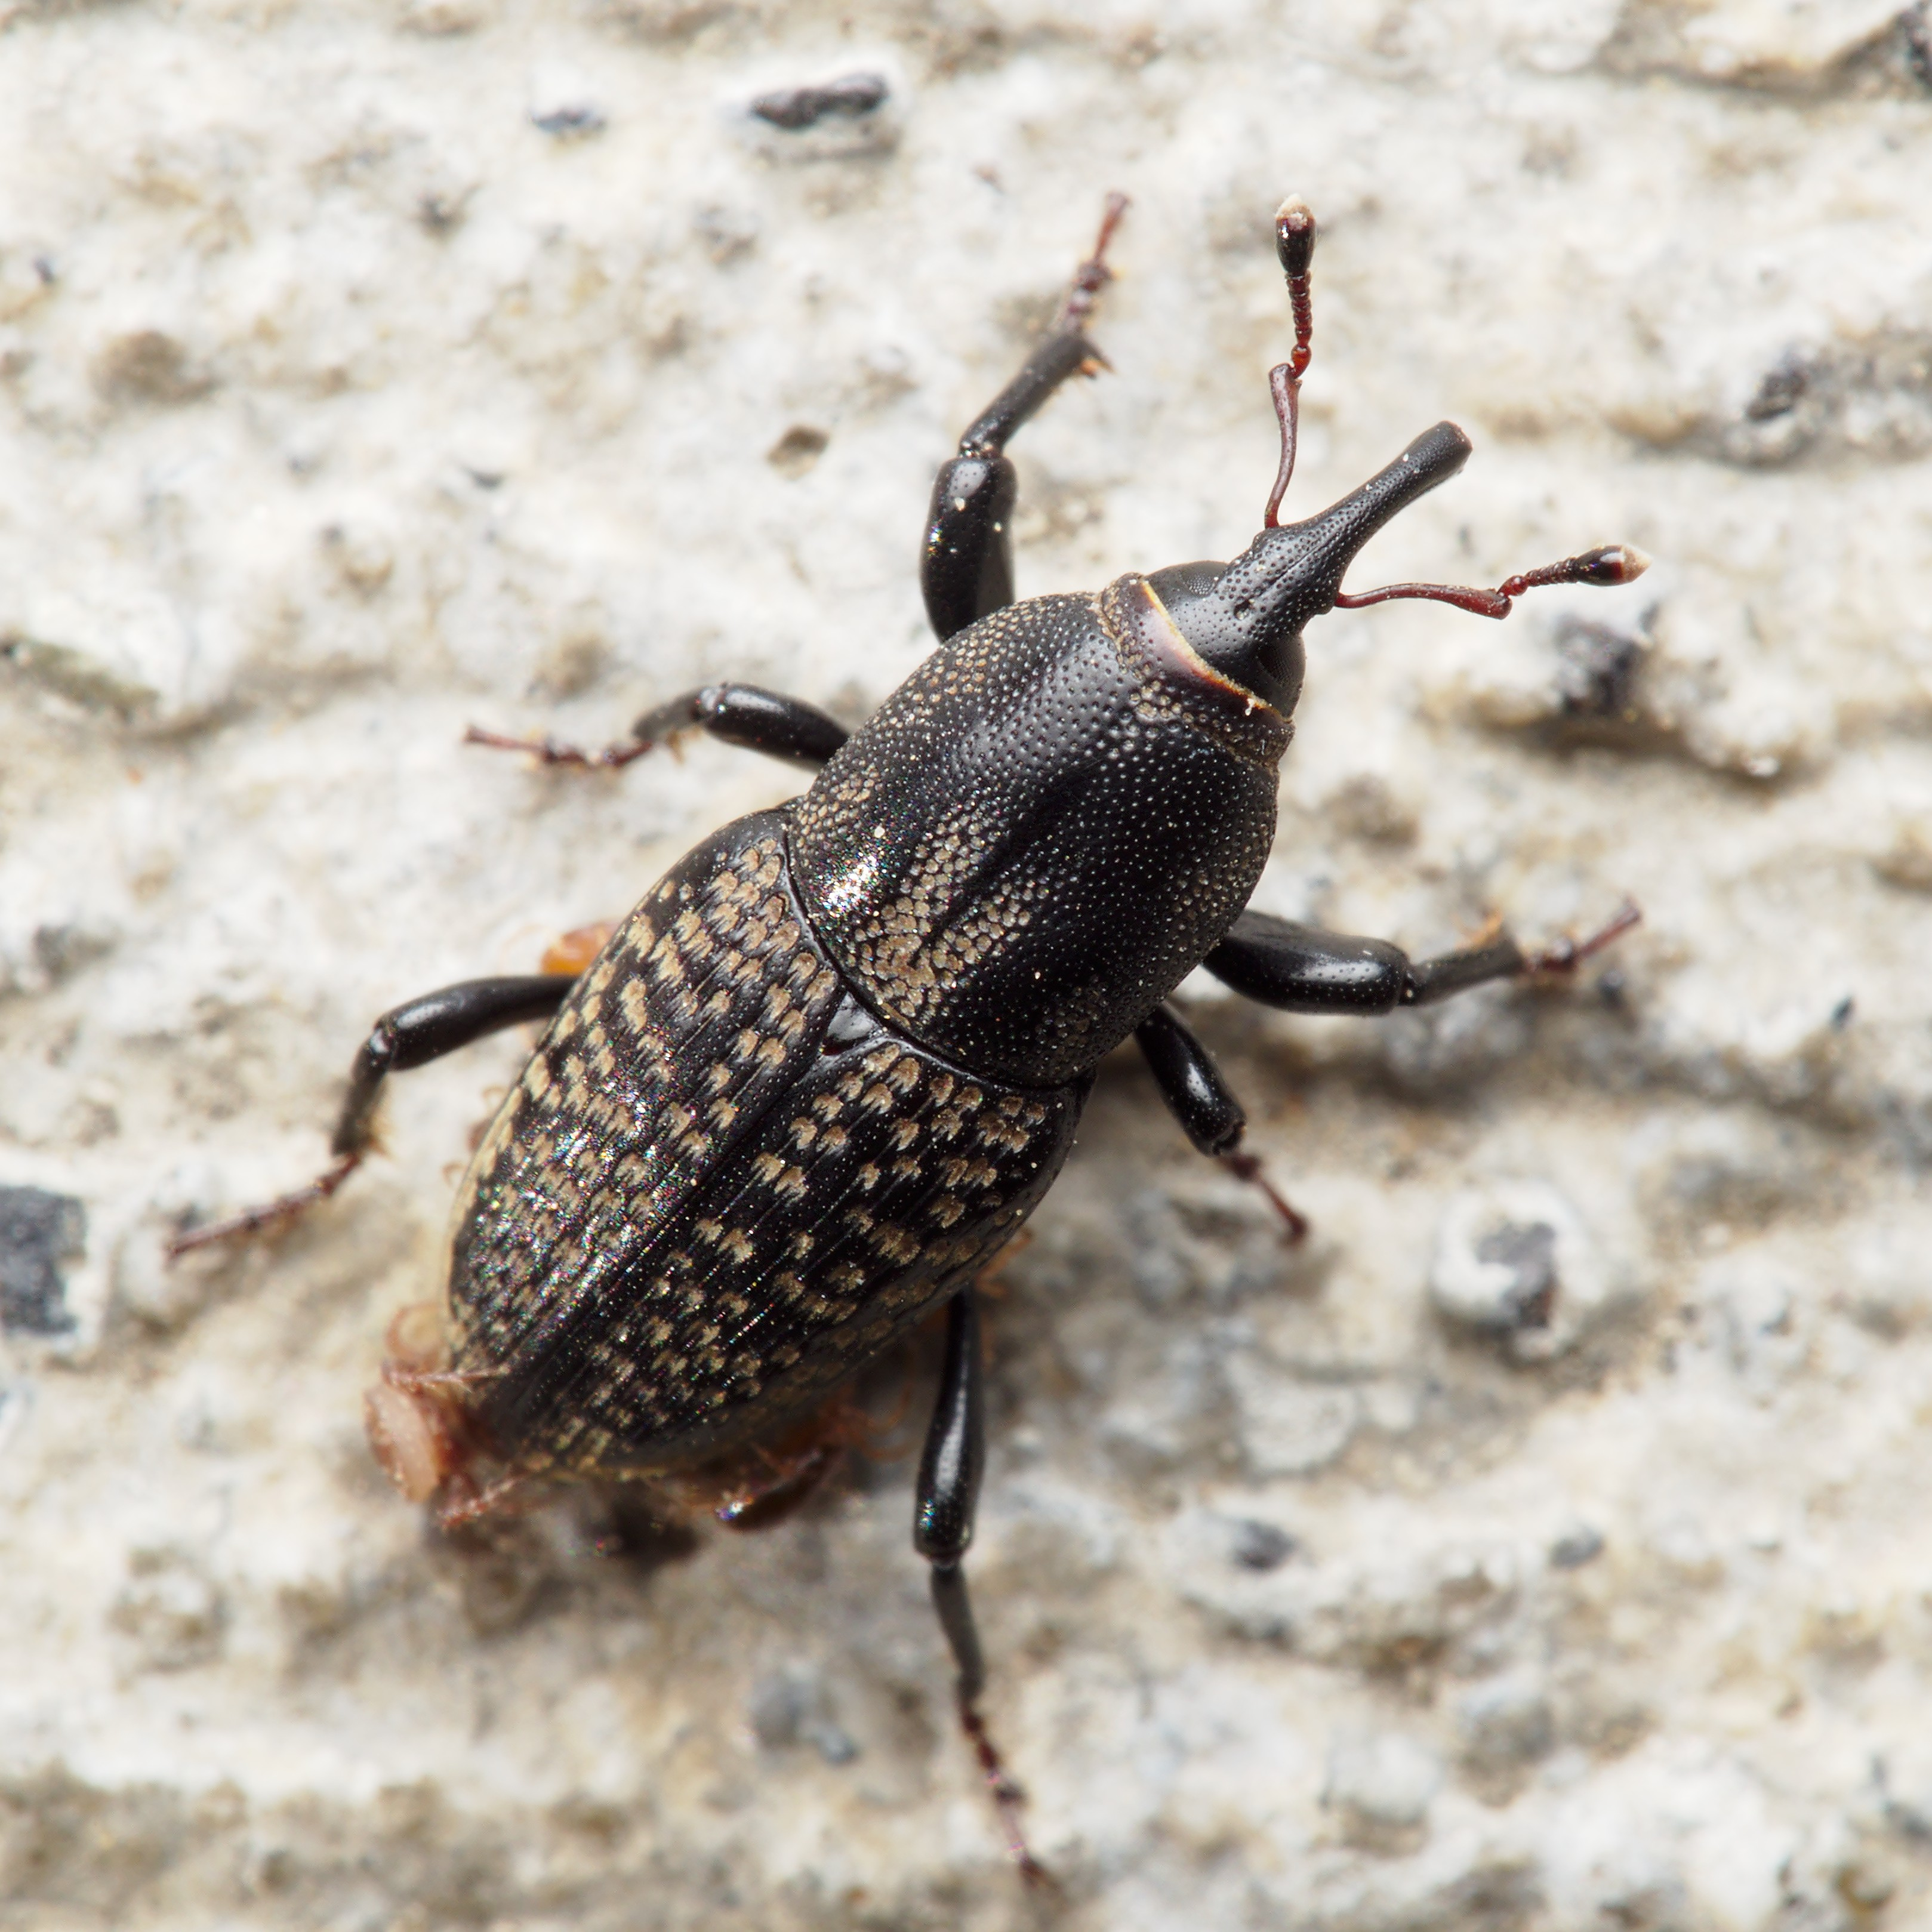 Lawn insect control from ExperiGreen Lawn Care can get rid of billbugs and other nasty lawn damaging pests.